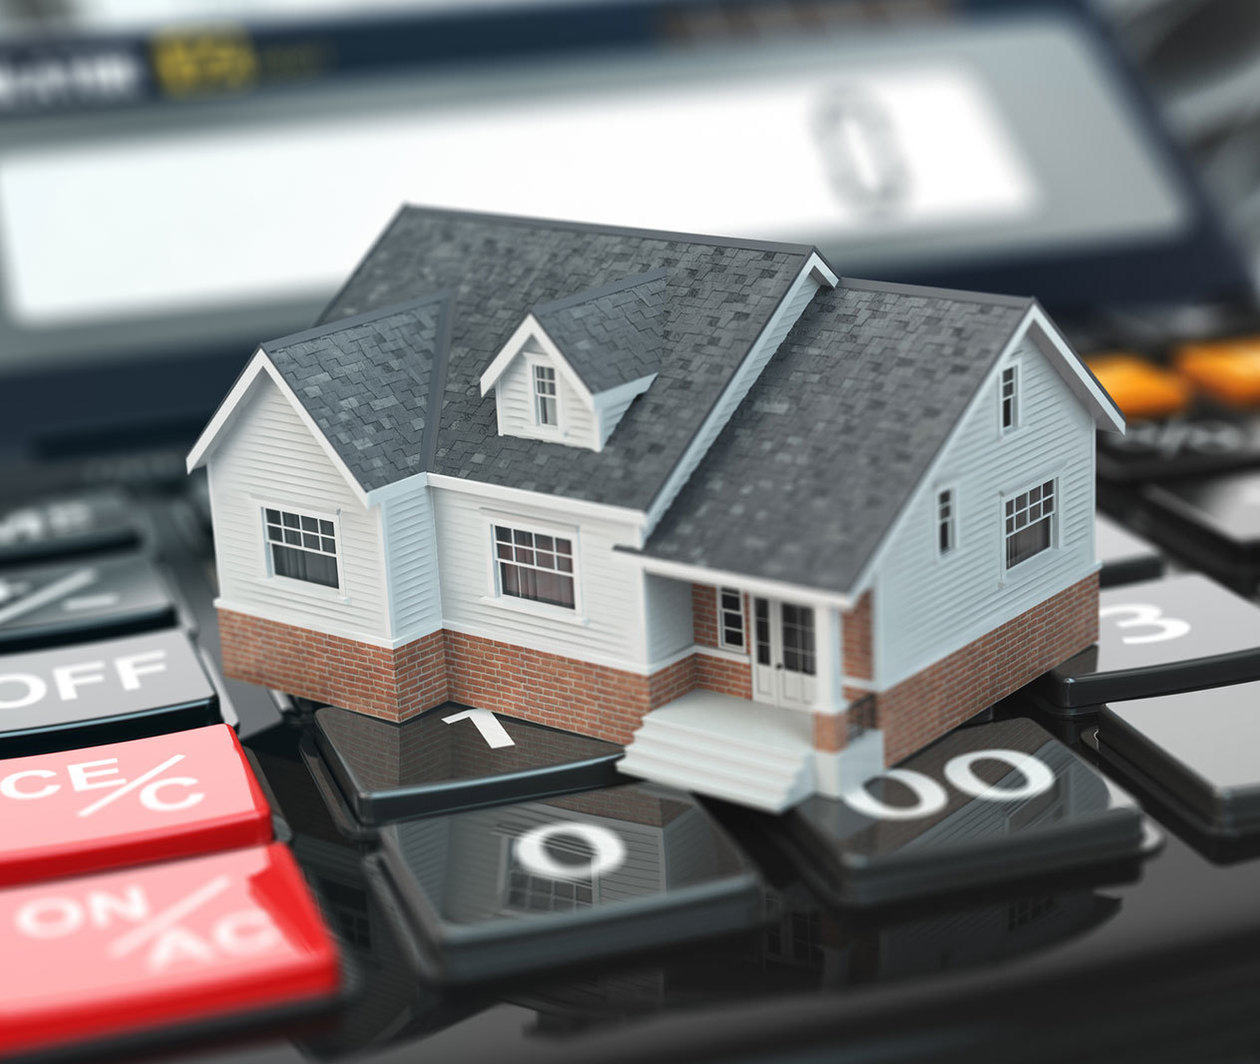 MMP742.3 Investment Evaluation Methods to Assist with Property Investment Decisions